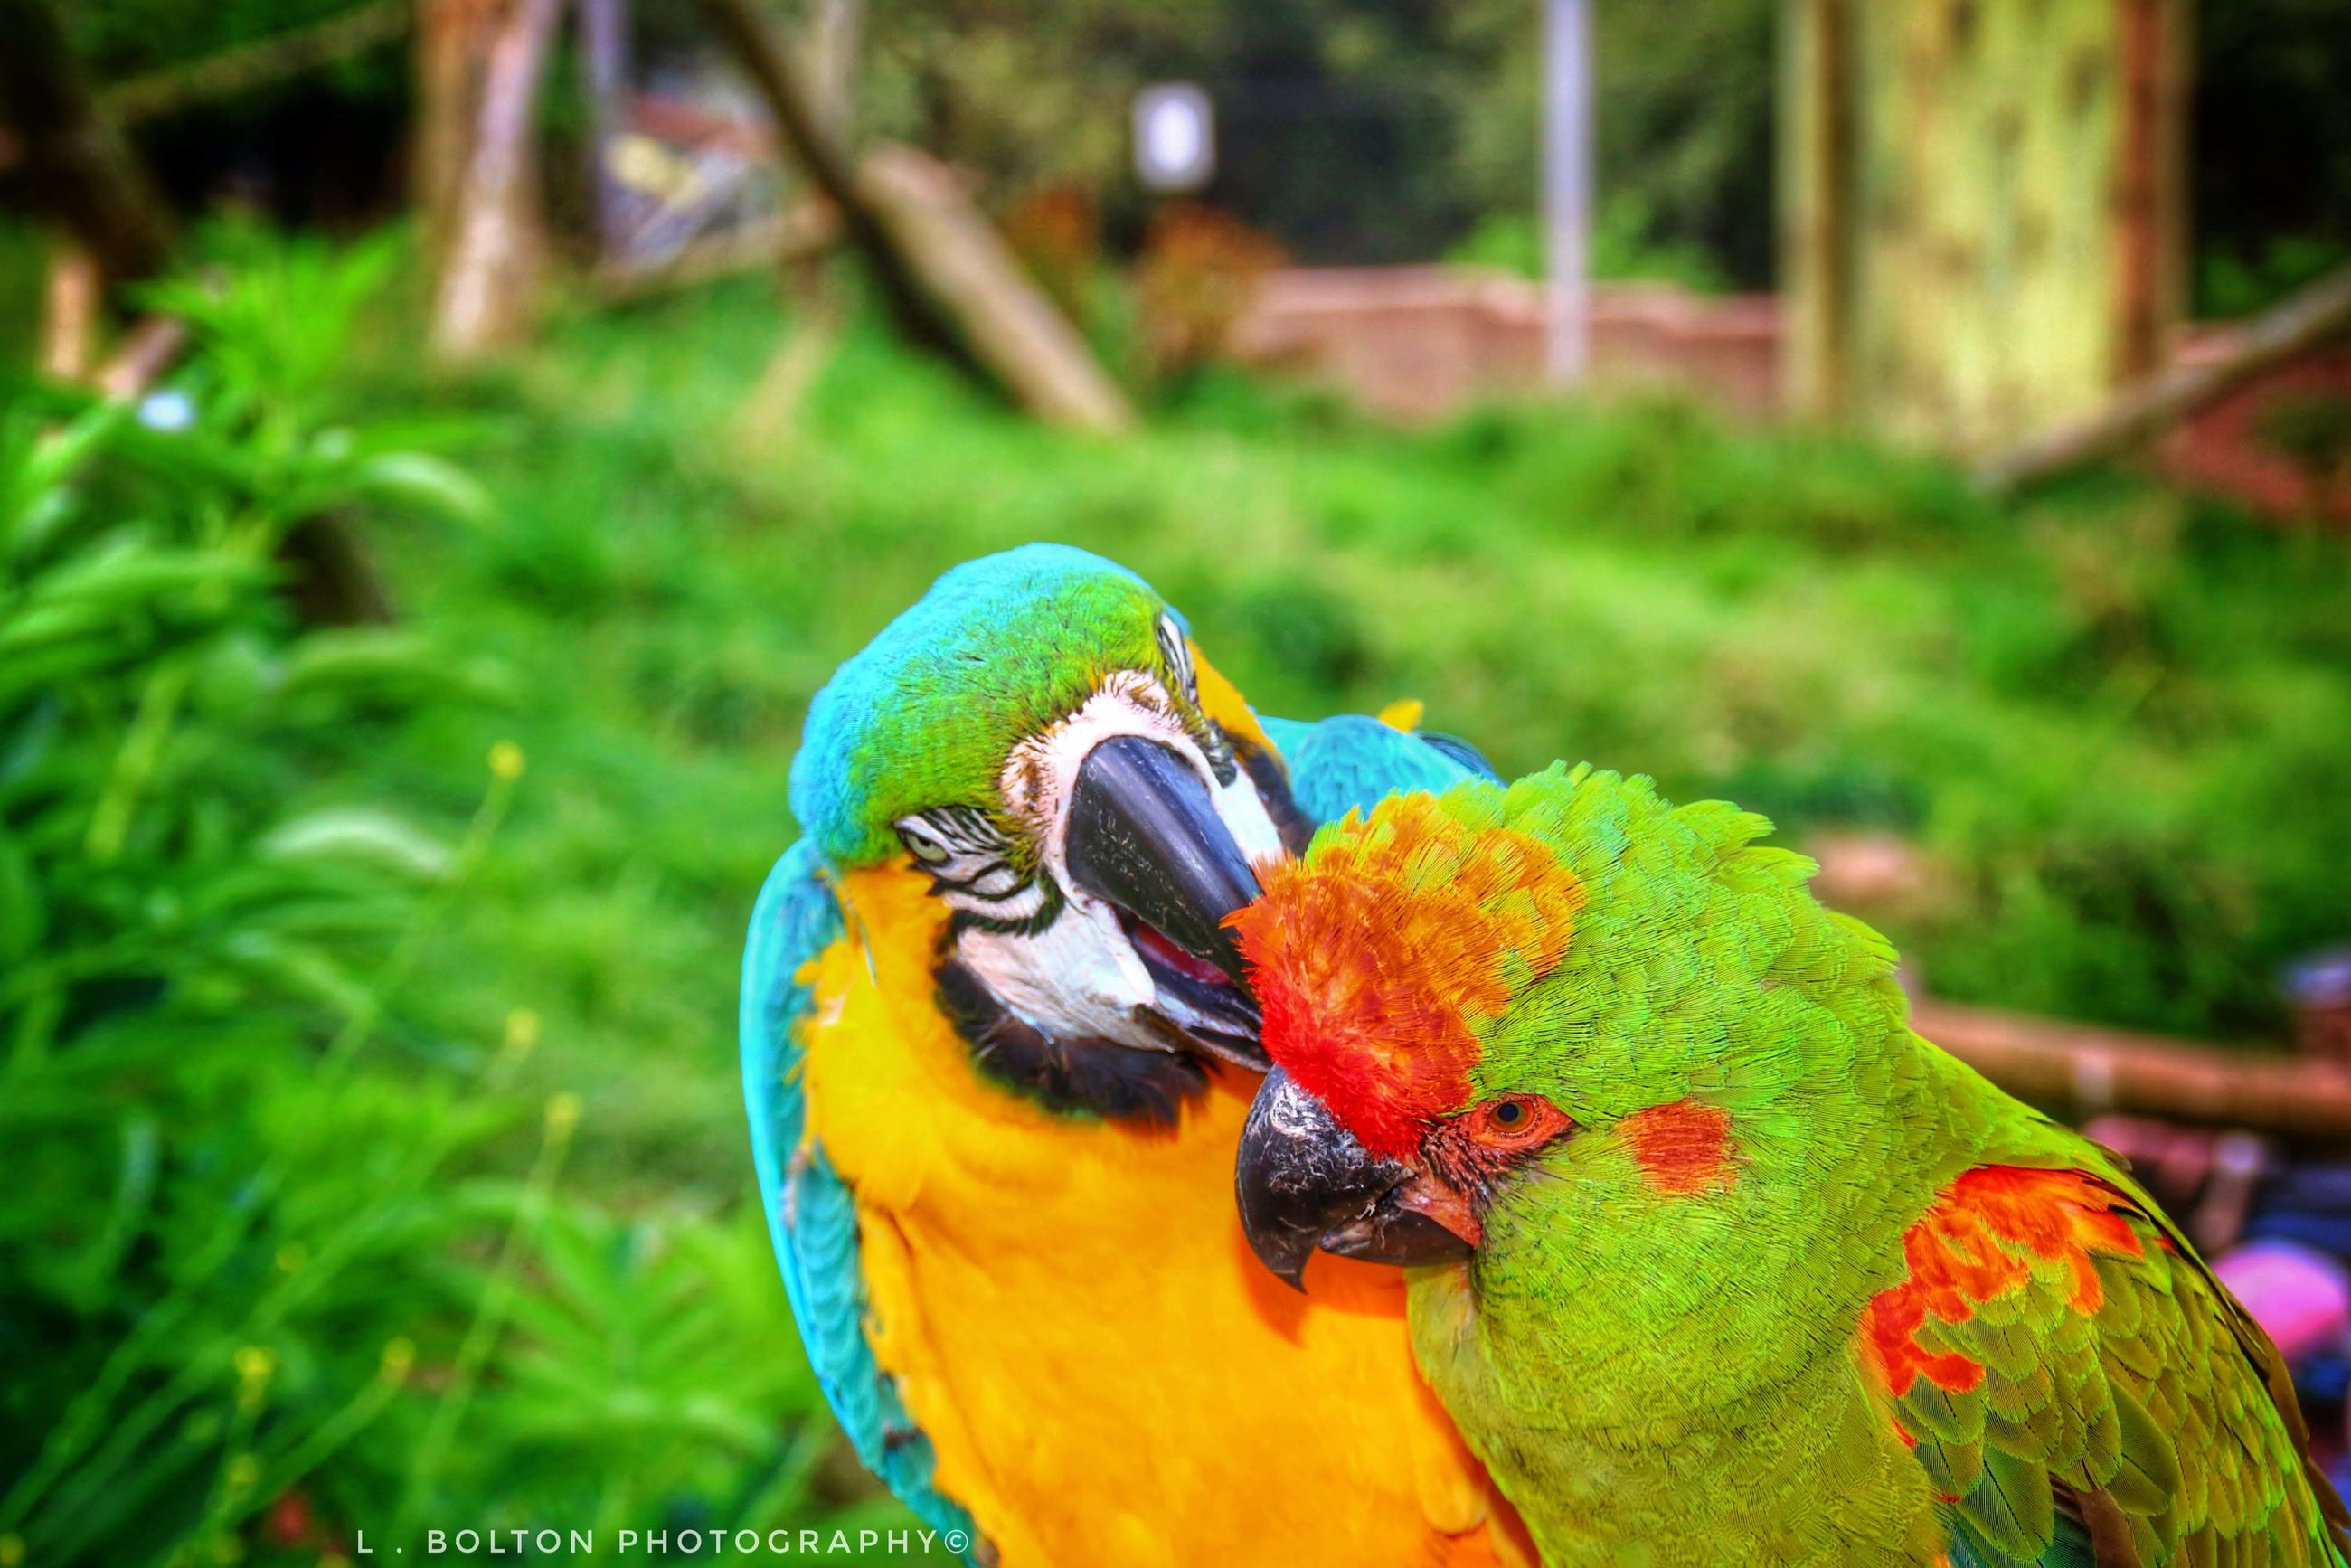 parrot, bird, vertebrate, animal themes, animal, animal wildlife, focus on foreground, animals in the wild, multi colored, day, group of animals, macaw, nature, no people, plant, close-up, green color, two animals, grass, outdoors, rainbow lorikeet